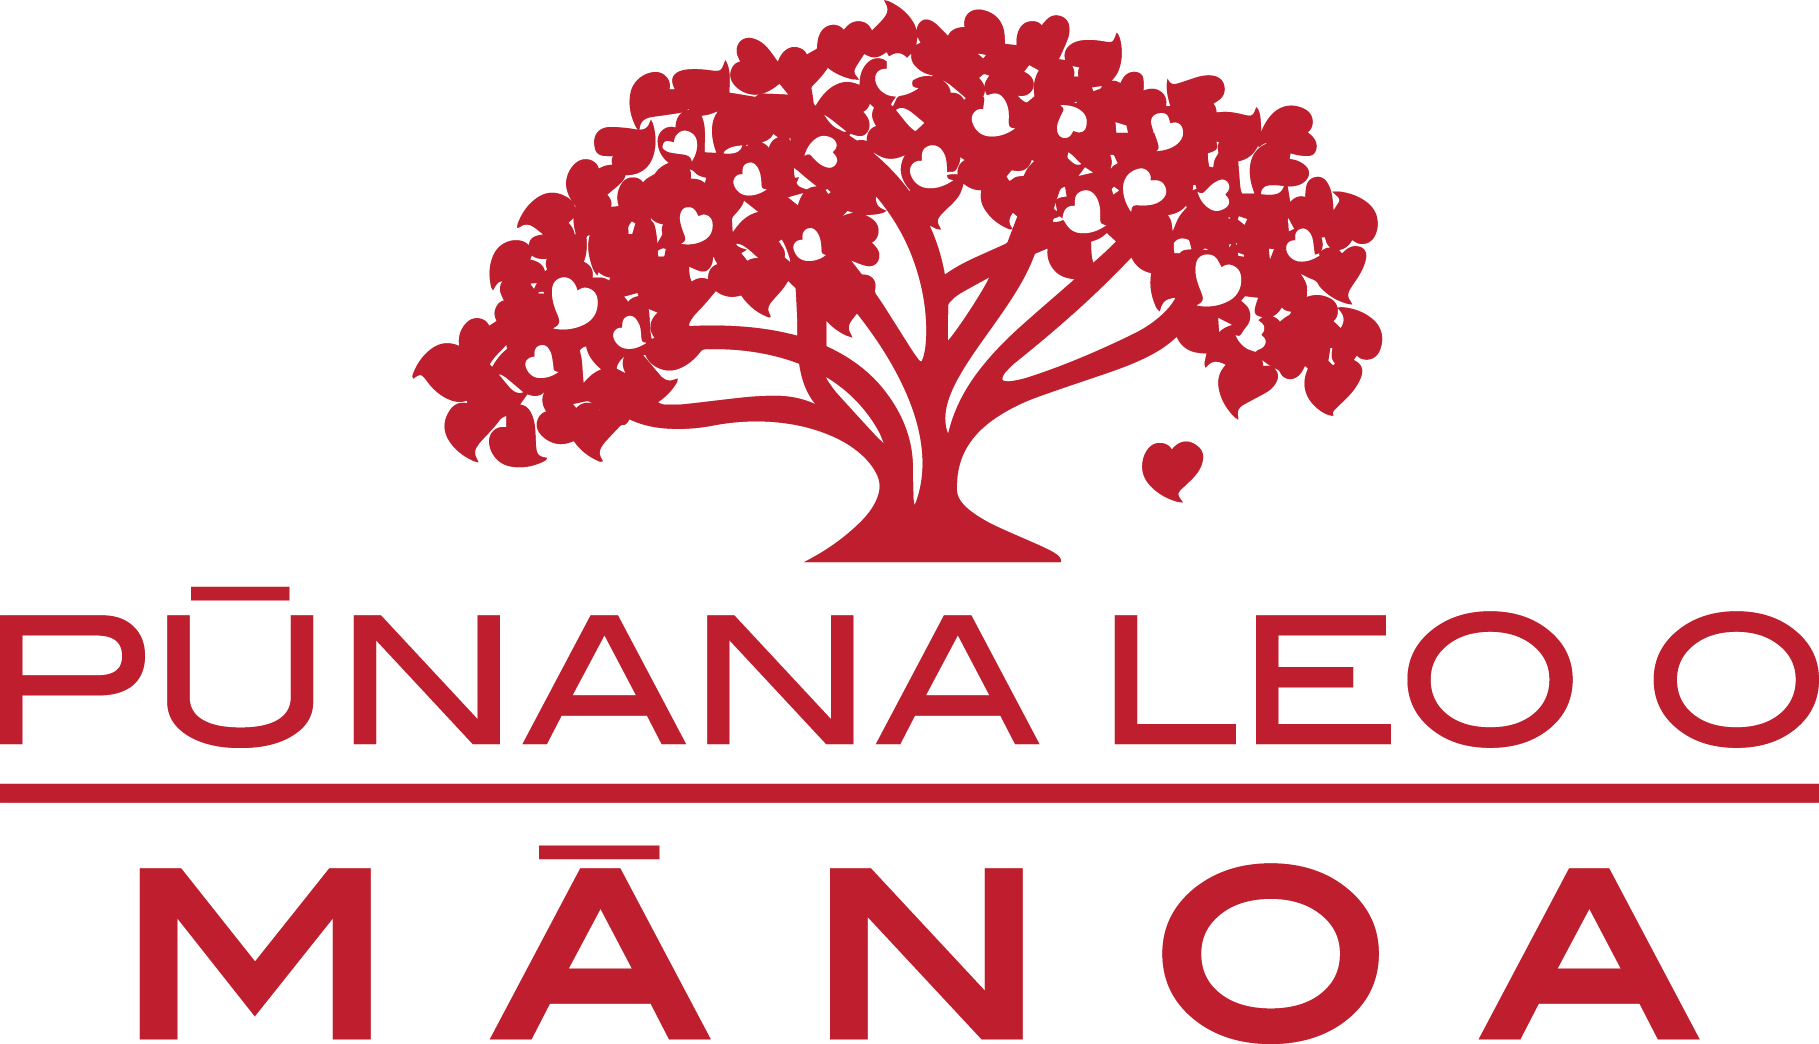 ODER NOW - Punana Leo O ManoaCURRENT ORDERING PERIOD: July 12th - July 27thPICK UP:All orders placed during this current ordering period will be delivered to Punana Leo O Manoa Office and will be available for pick up on Friday - August 10th.